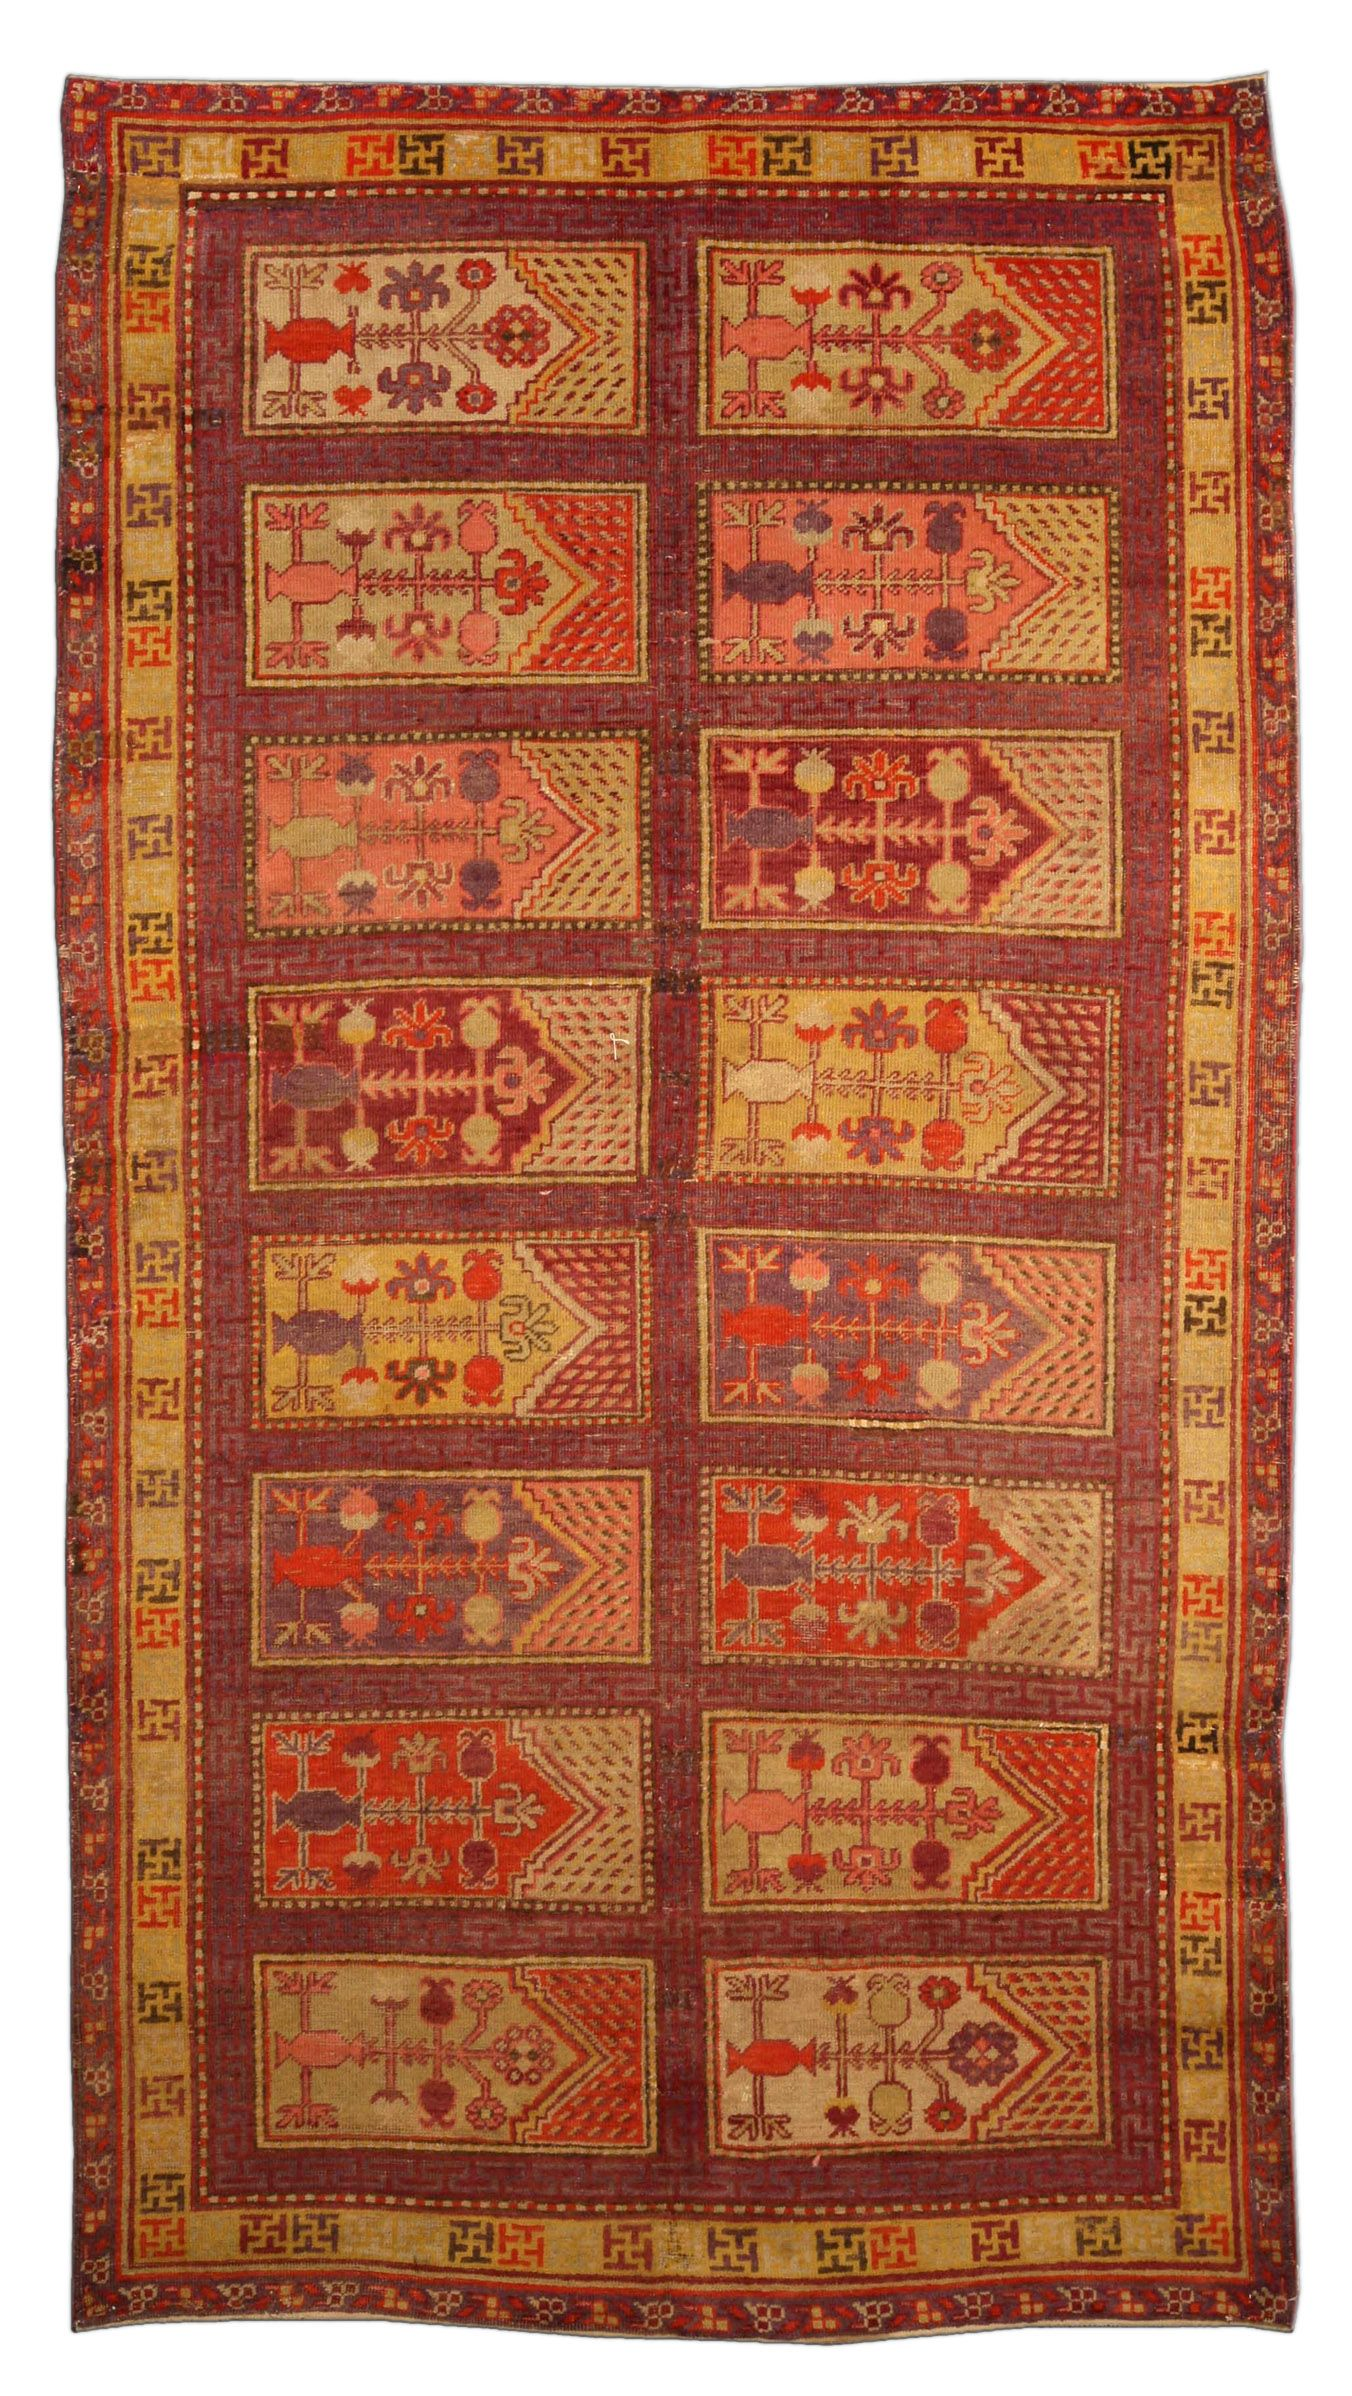 A Khotan Rug Bb4080 A Second Quarter 20th Century Khotan Samarkand Rug The Purple Field With A Subtle Greek Key Motif A Asian Rugs Rugs Handmade Wool Rugs